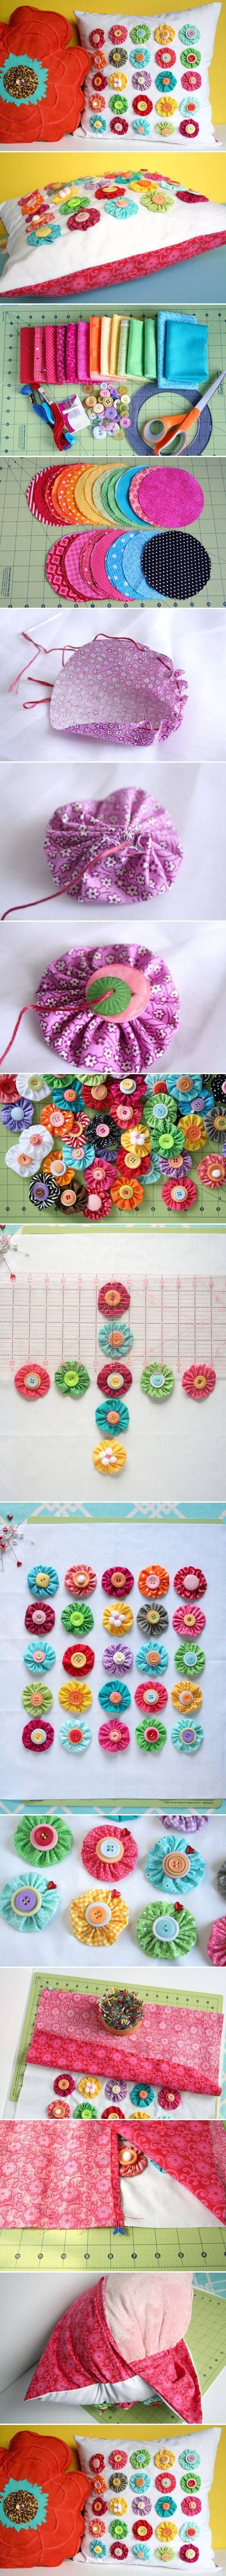 DIY Fabric Decorative Flowers DIY Projects | UsefulDIY.com